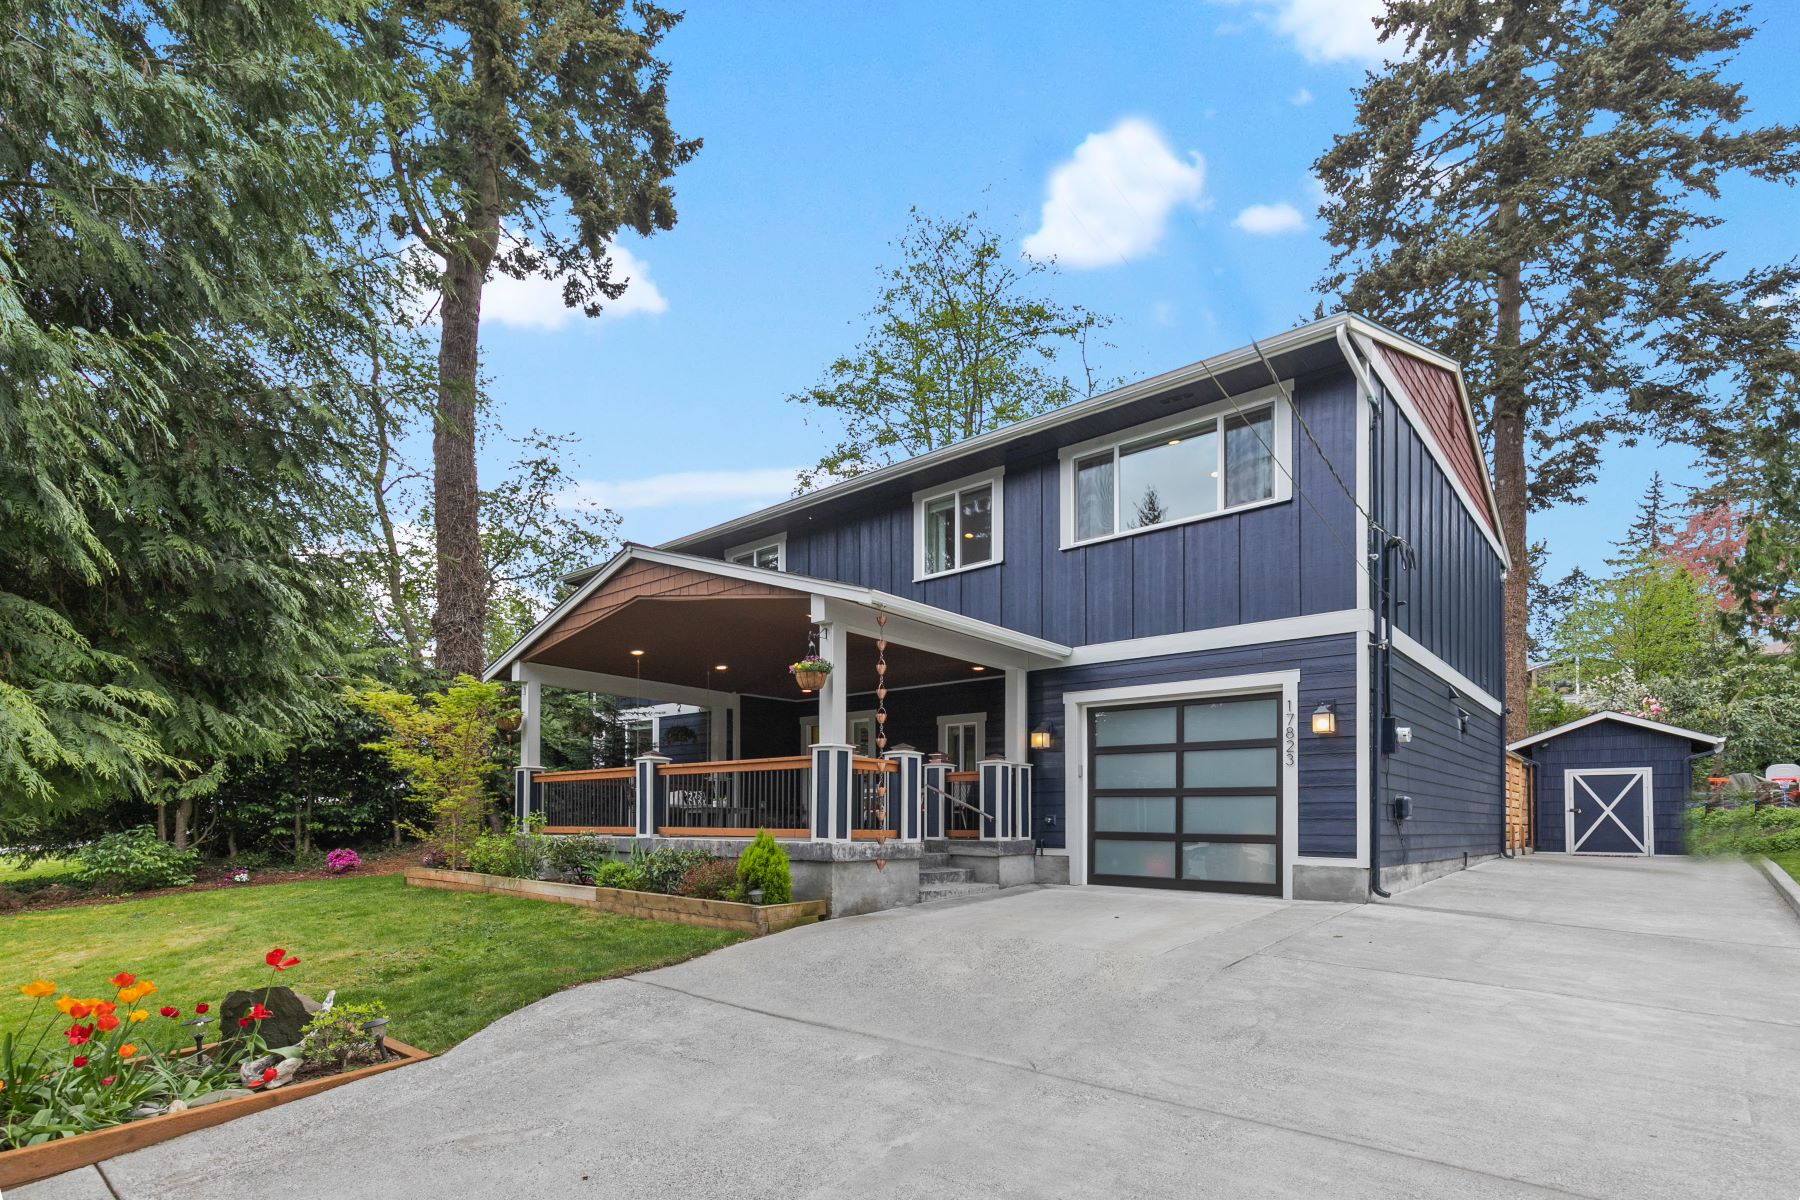 Single Family Homes for Sale at 17823 Ashworth Ave N, Shoreline, WA 98133 Shoreline, Washington 98133 United States